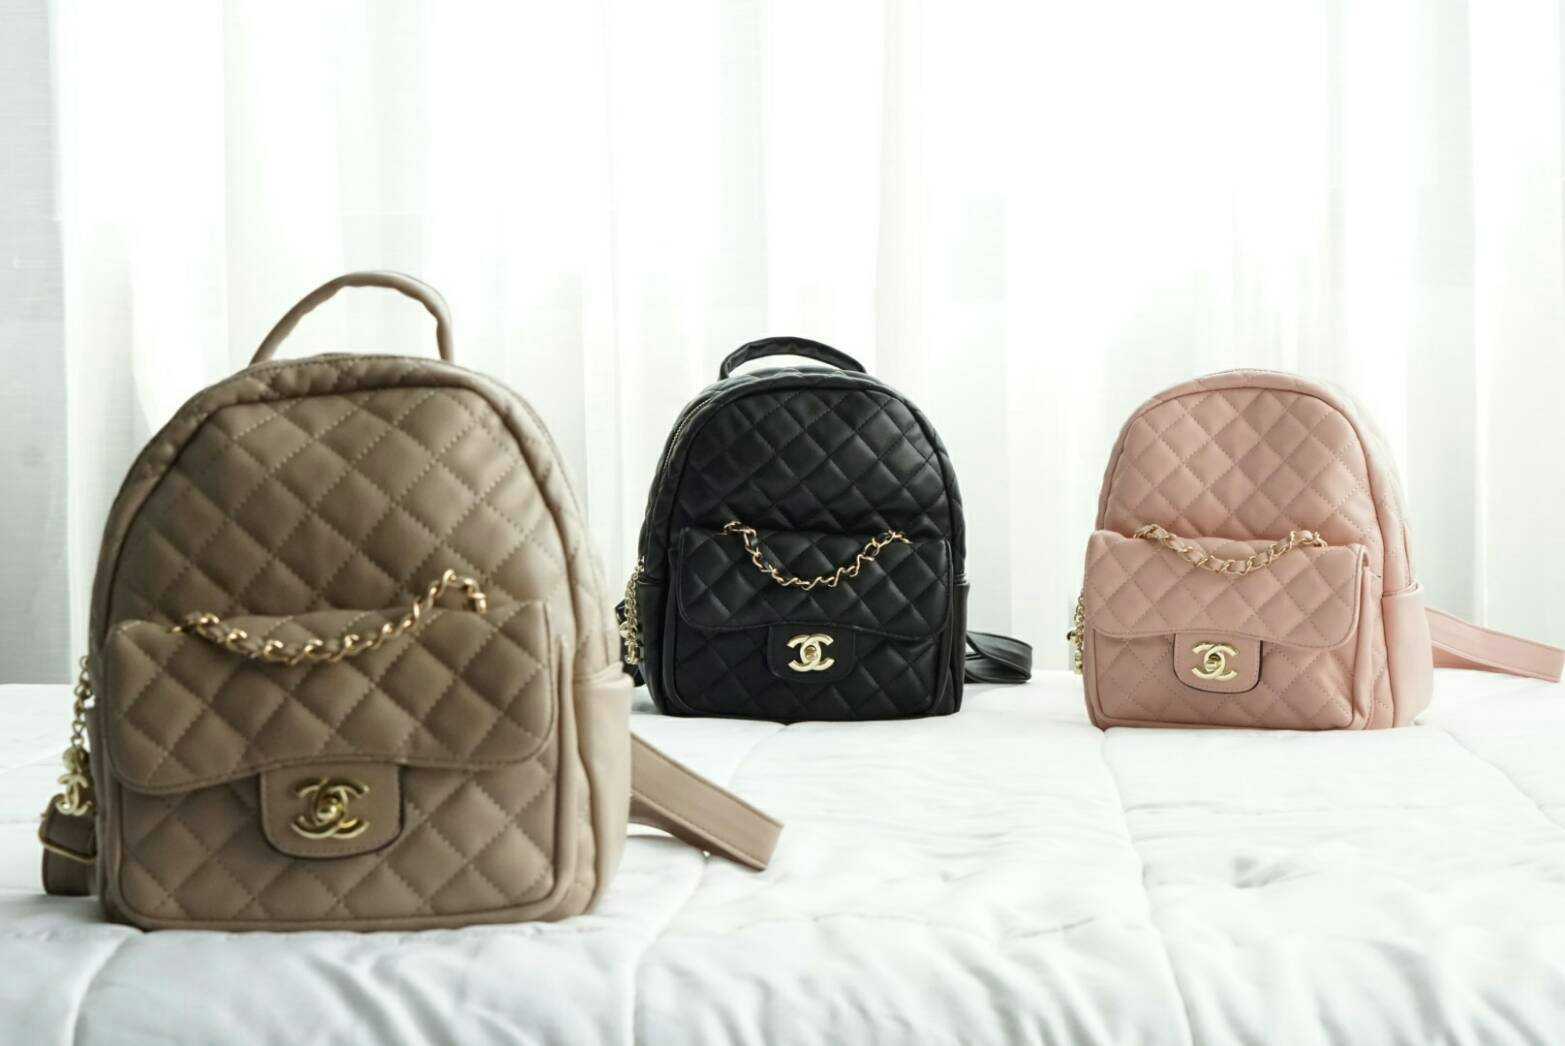 *Chanel Backpack Lady Size*